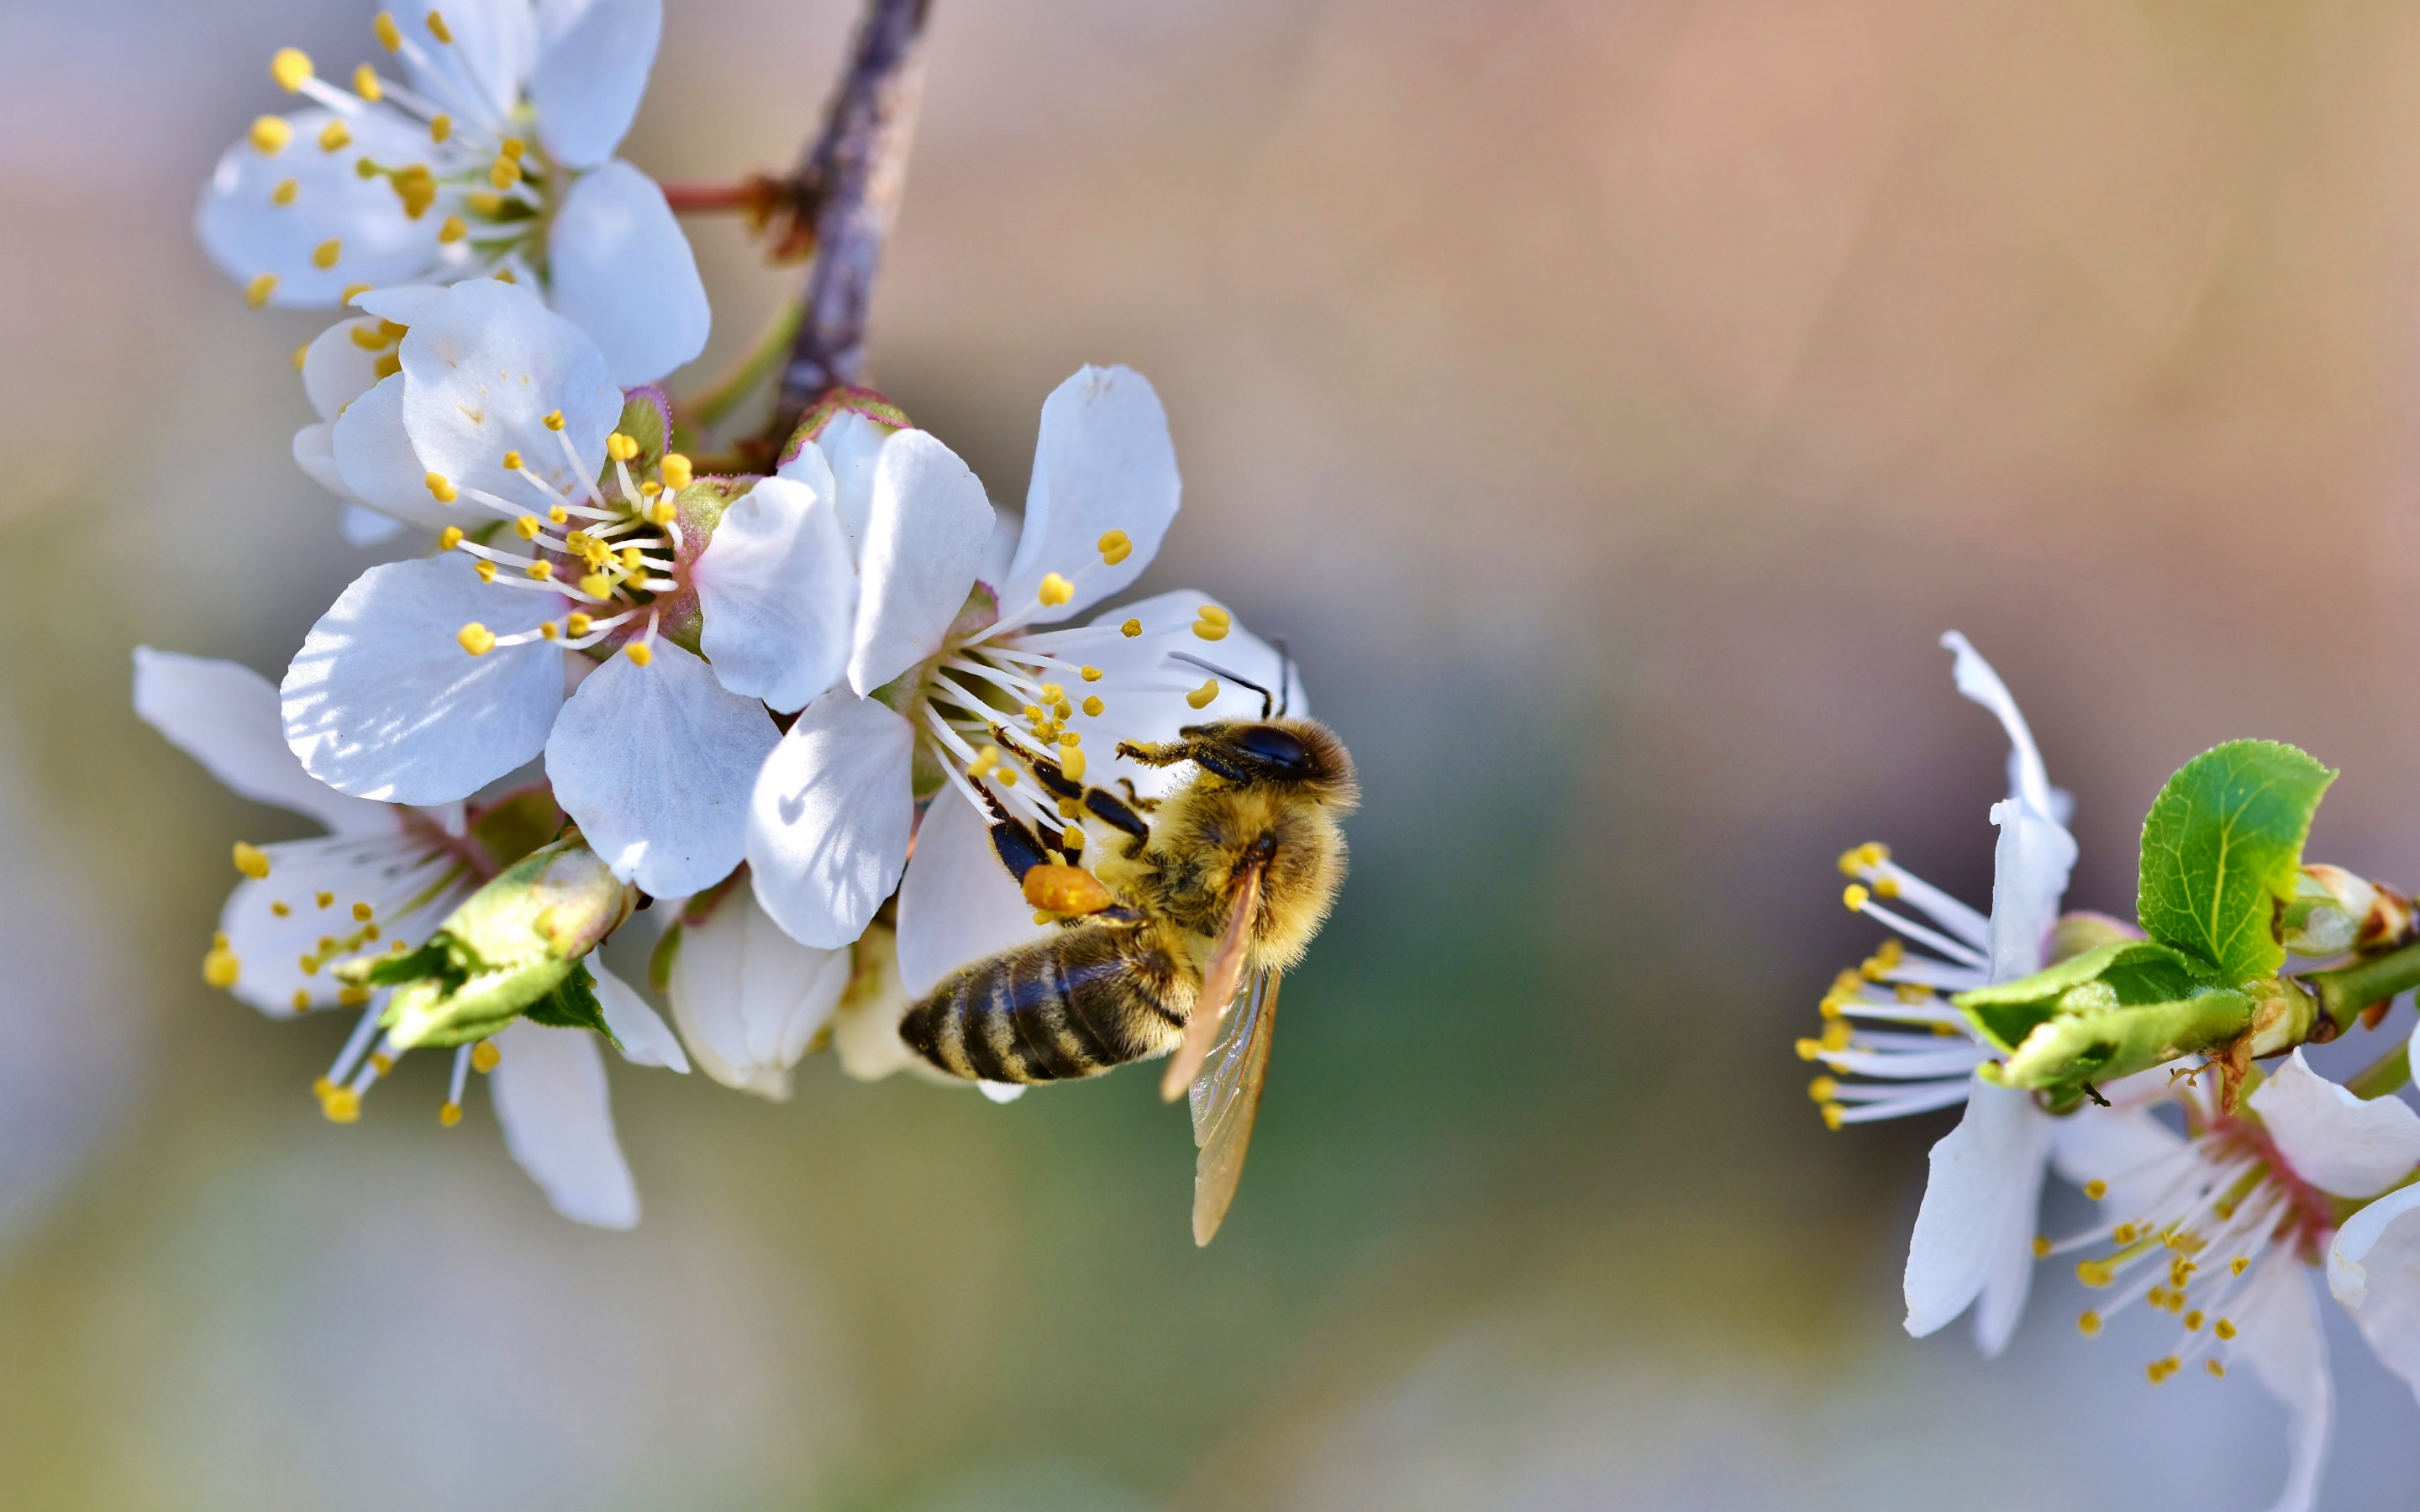 Spring, bee, blossoms, flower wallpaper 2880x1800